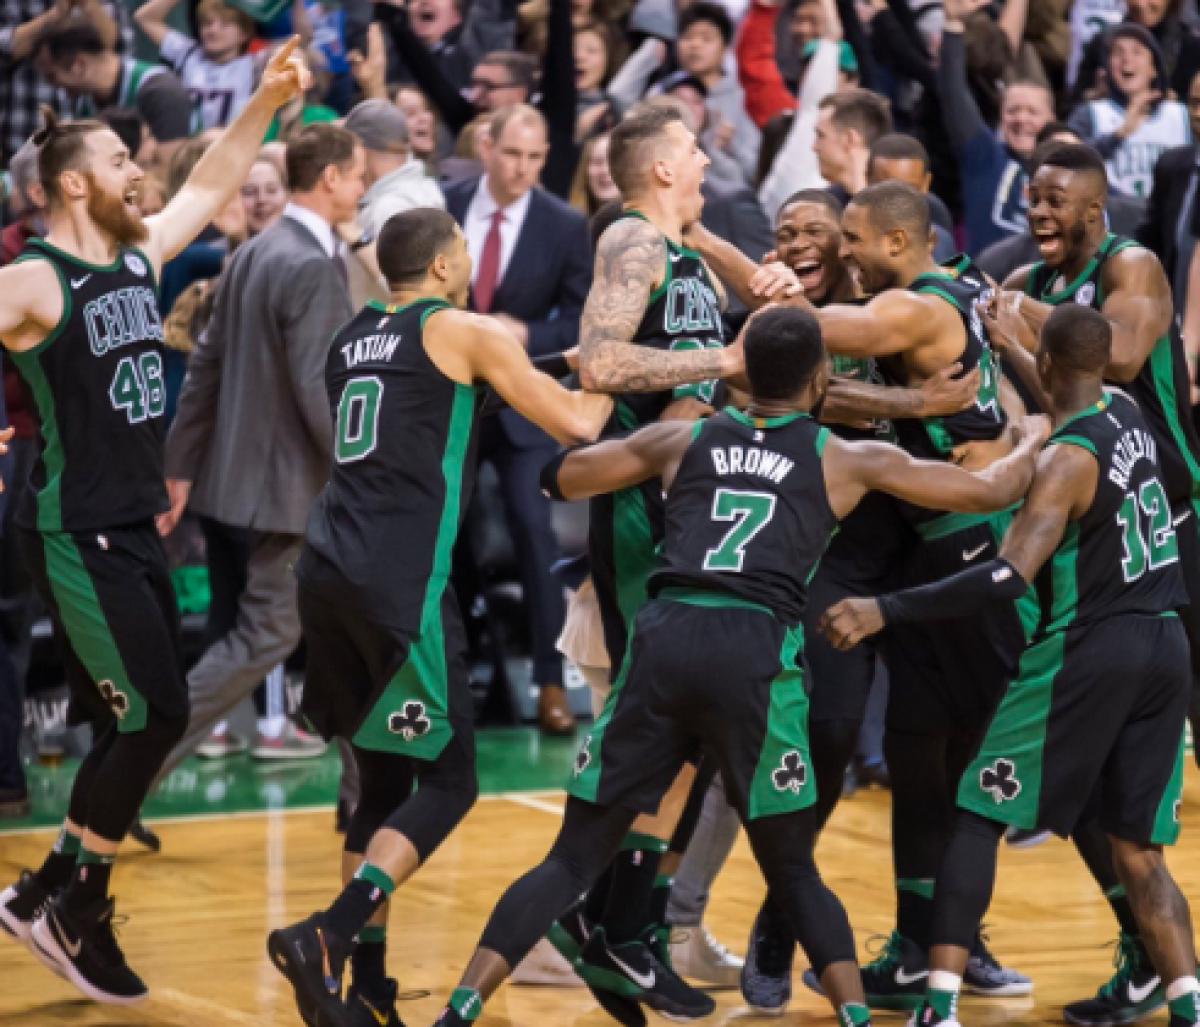 NBA Playoffs - I Boston Celtics ed il mal di trasferta